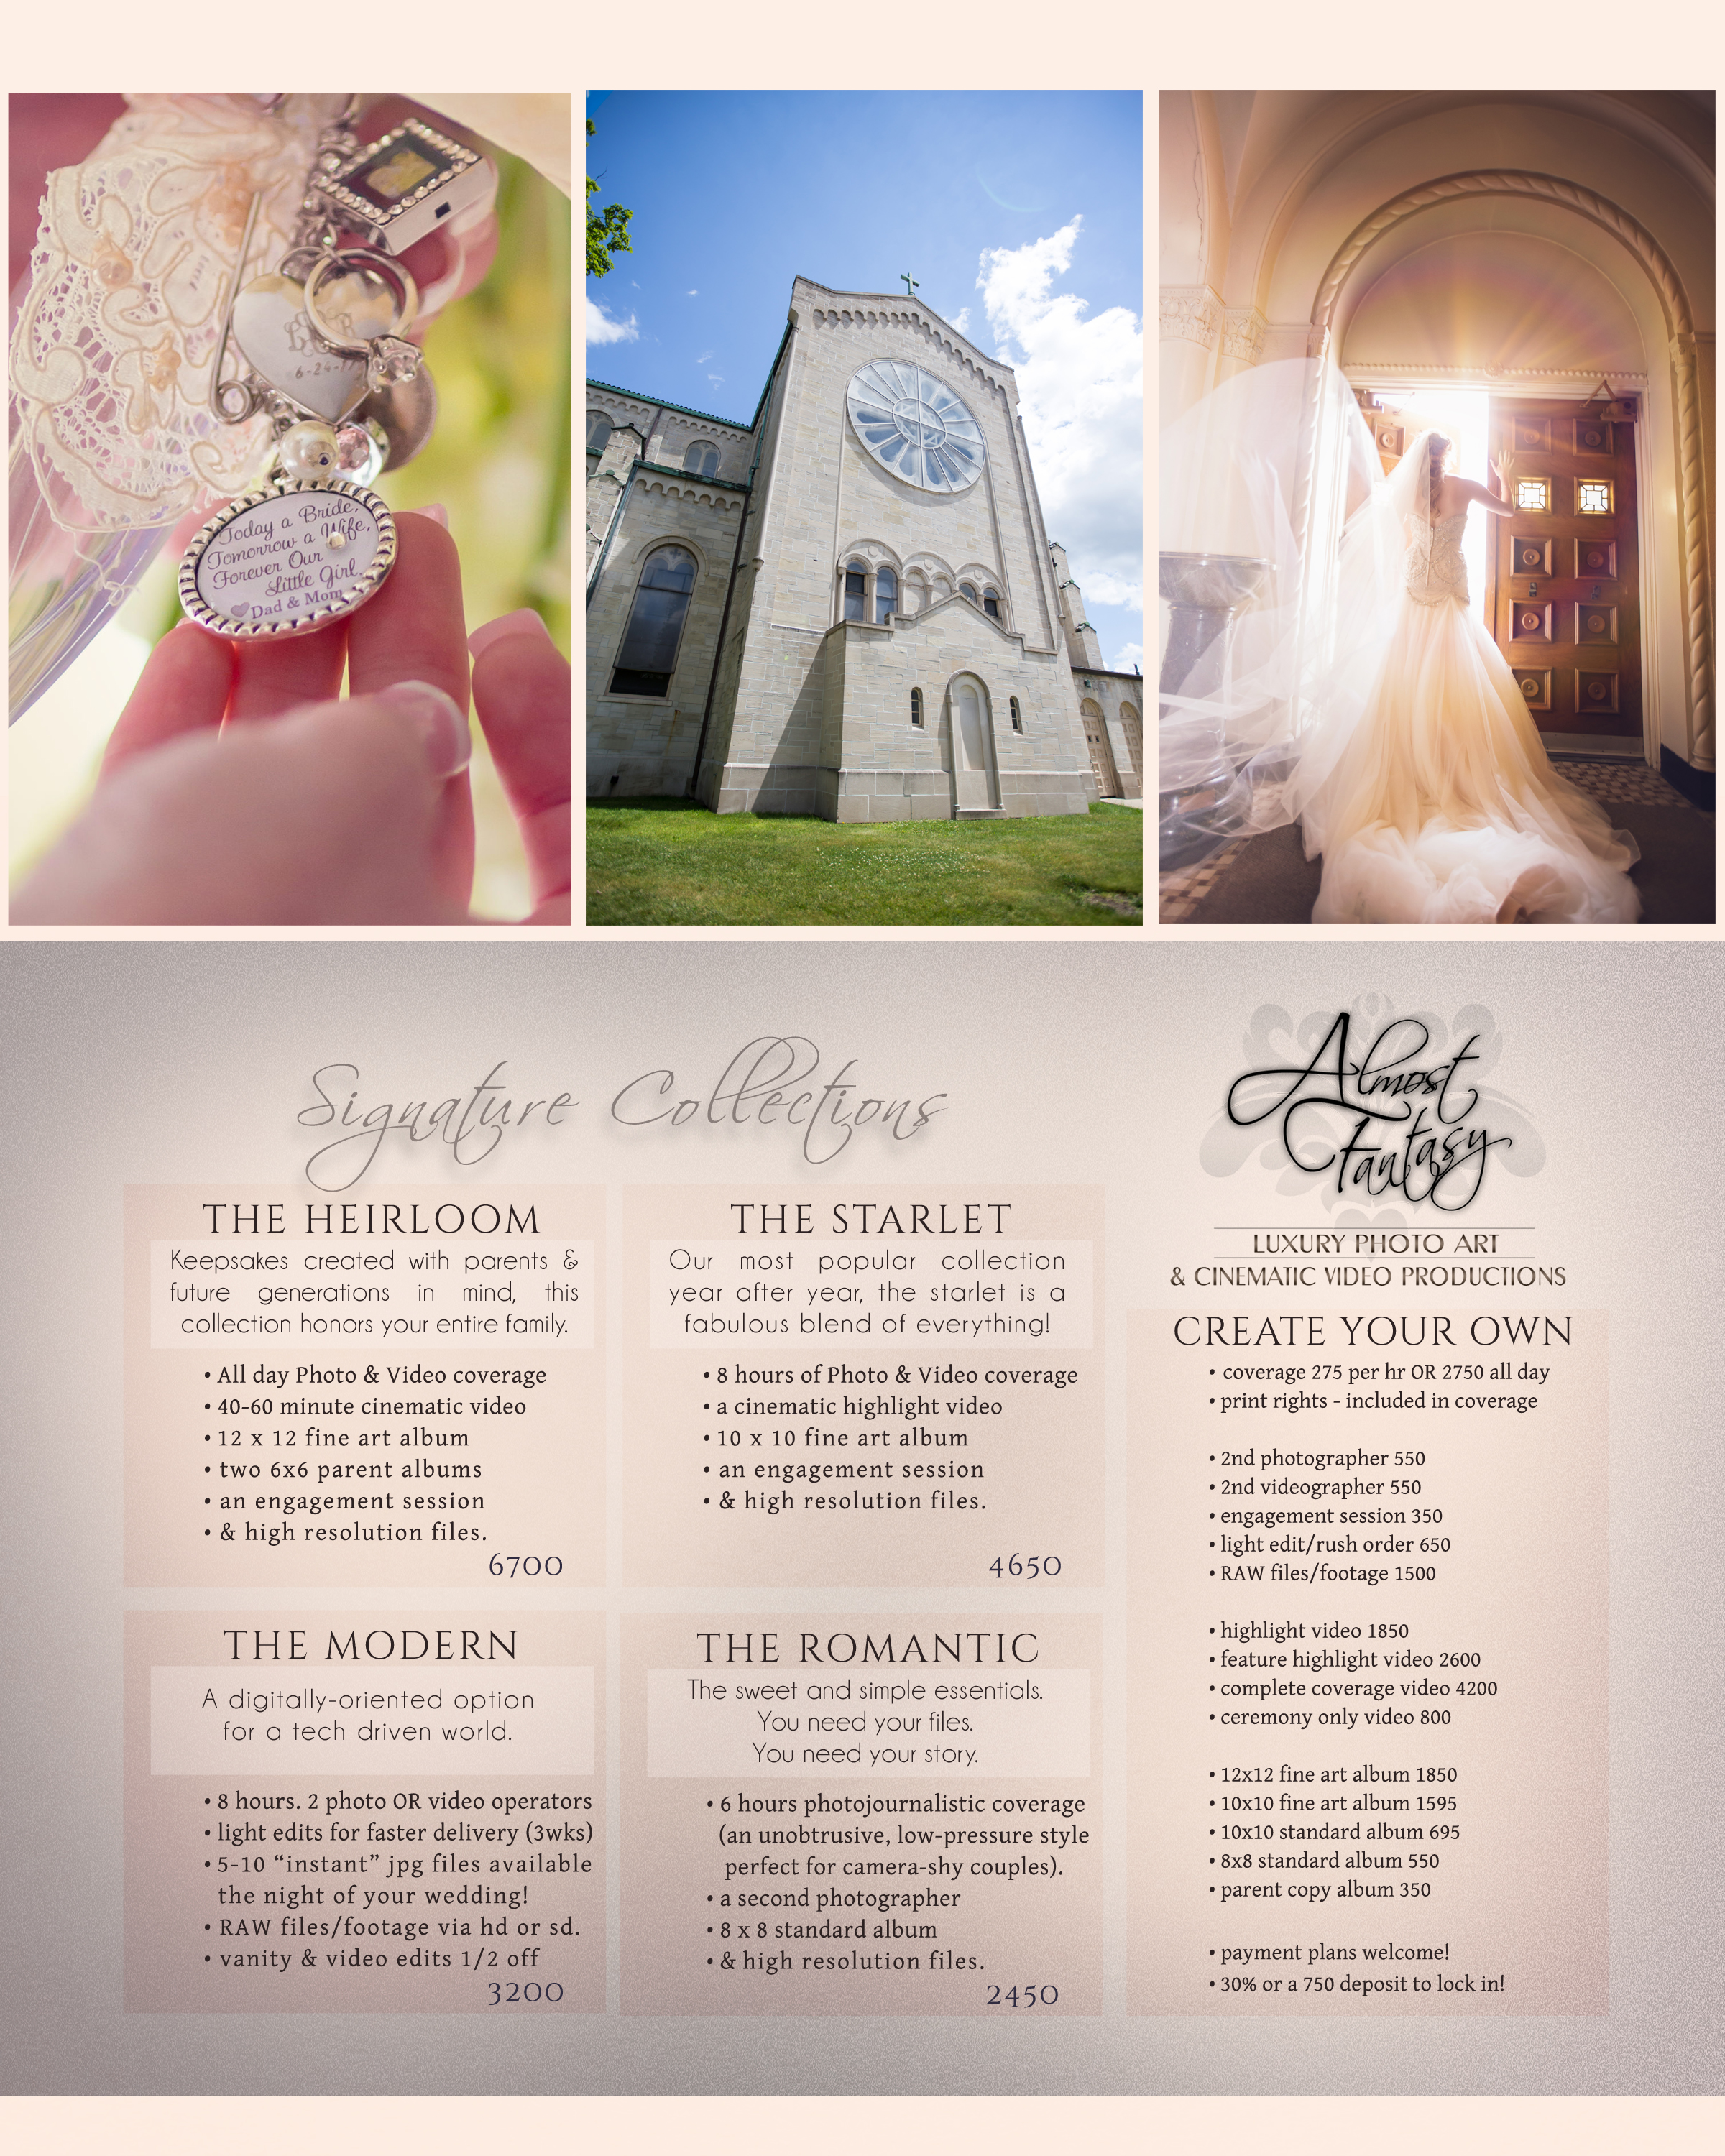 Full pricing for Kalamazoo Photo and Video wedding prices